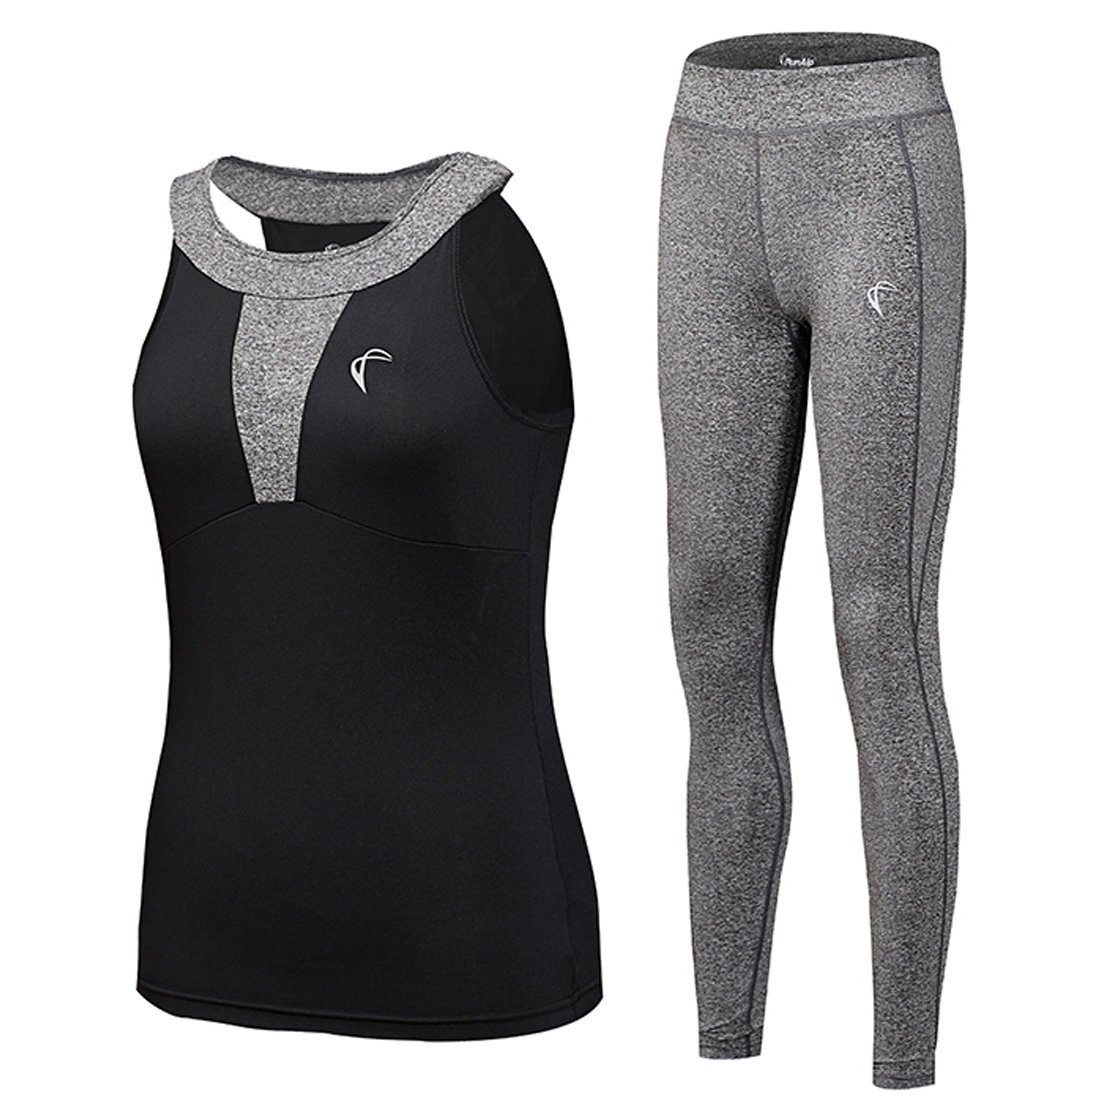 Shelcup Tracksuit For Women Yoga Workout Fitness Running Athletic Sports Gym Tank Top Pant 2 Piece Set, Black Top and Grey Pant, Medium